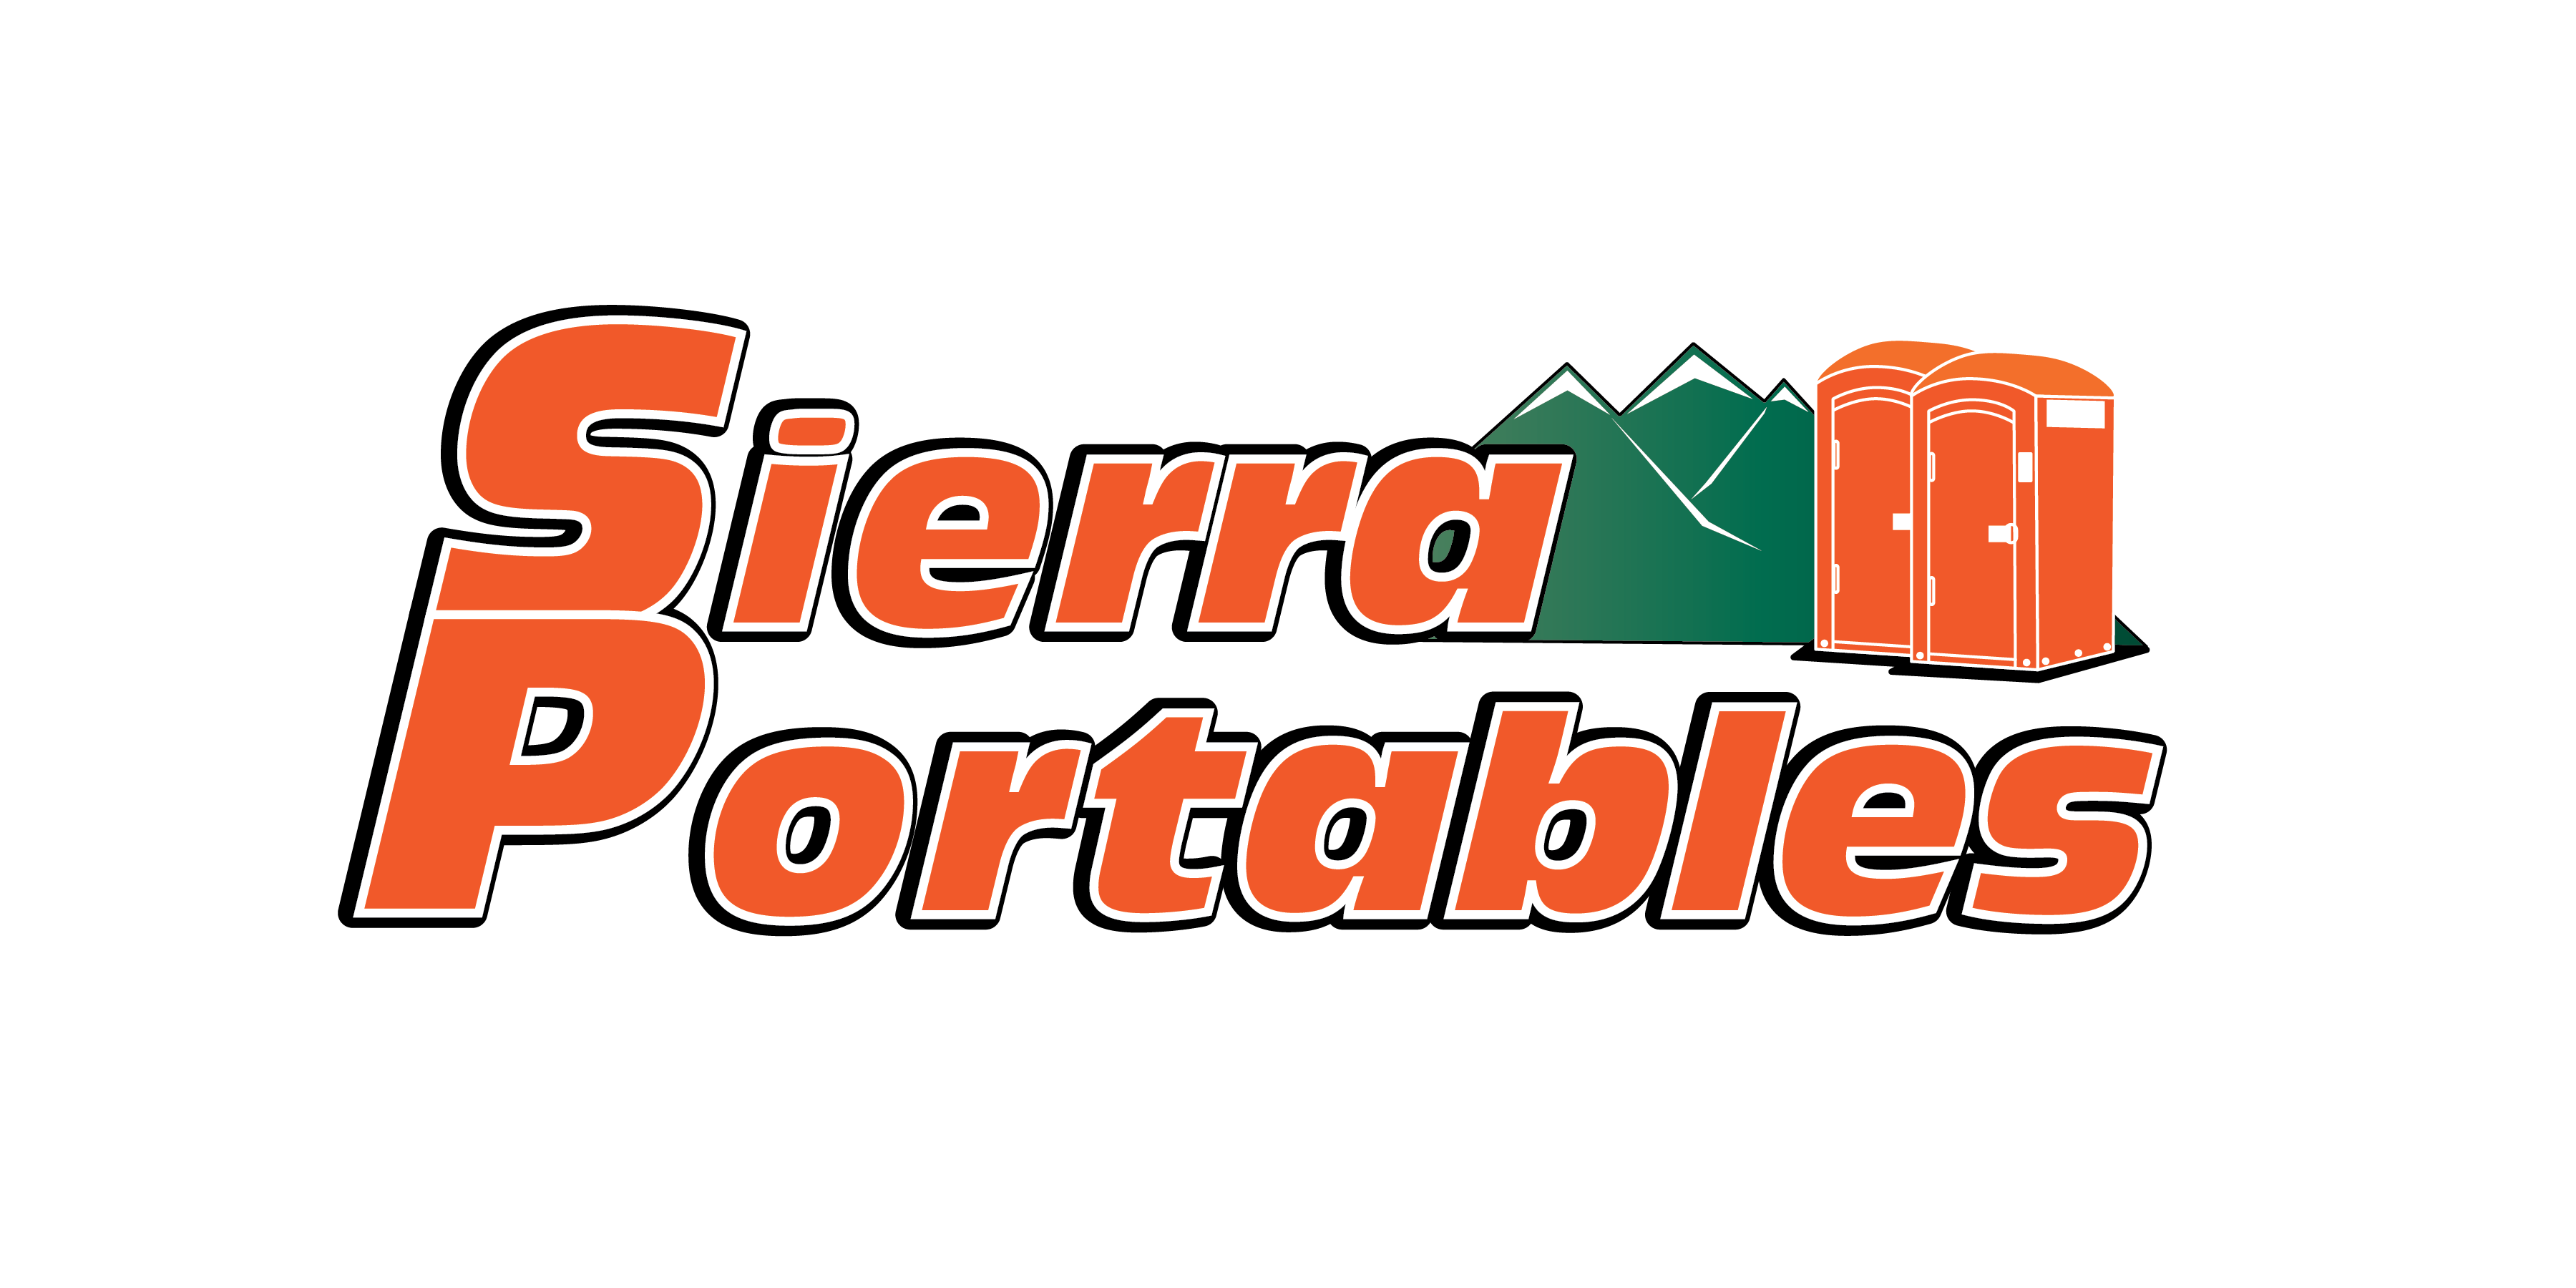 SIERRA PORTABLES INC